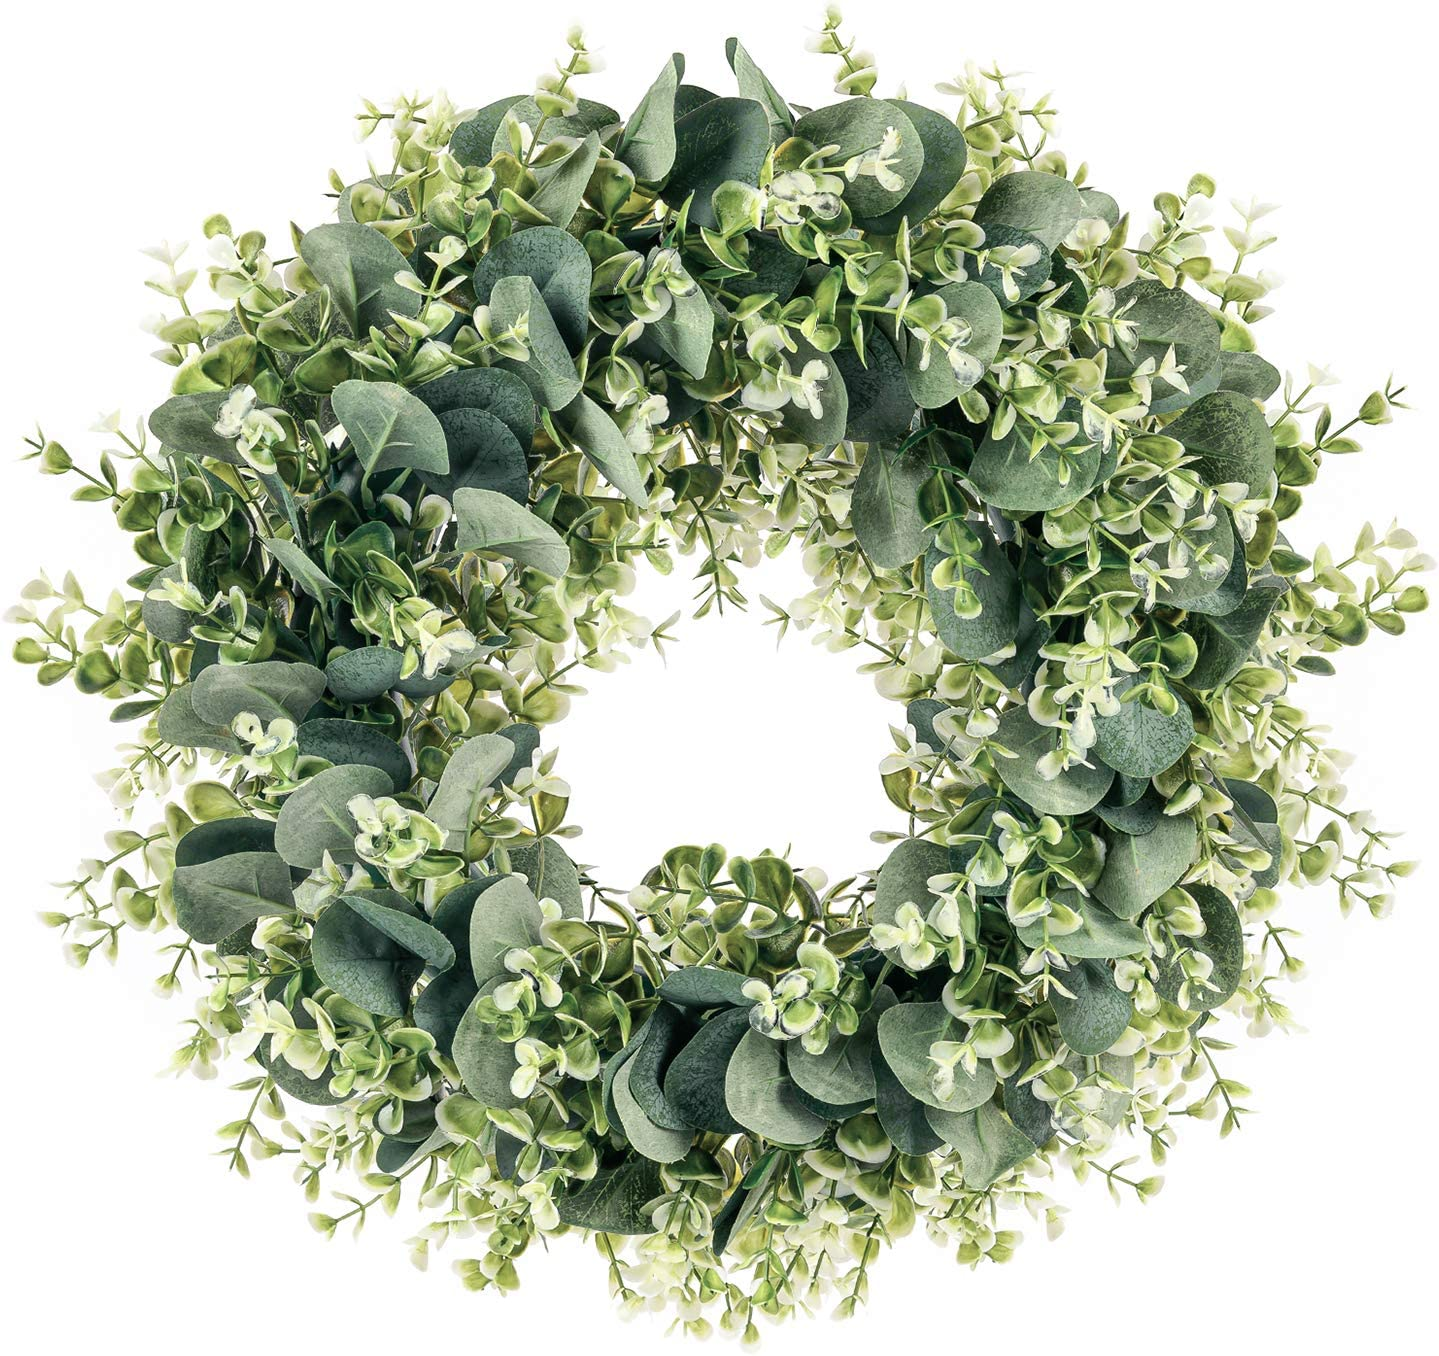 MELAJIA Eucalyptus Wreaths 16 Inch Summer Wreath Artificial Green Leaves Wreaths for Front Door Wall Home Decor Indoor Outdoor